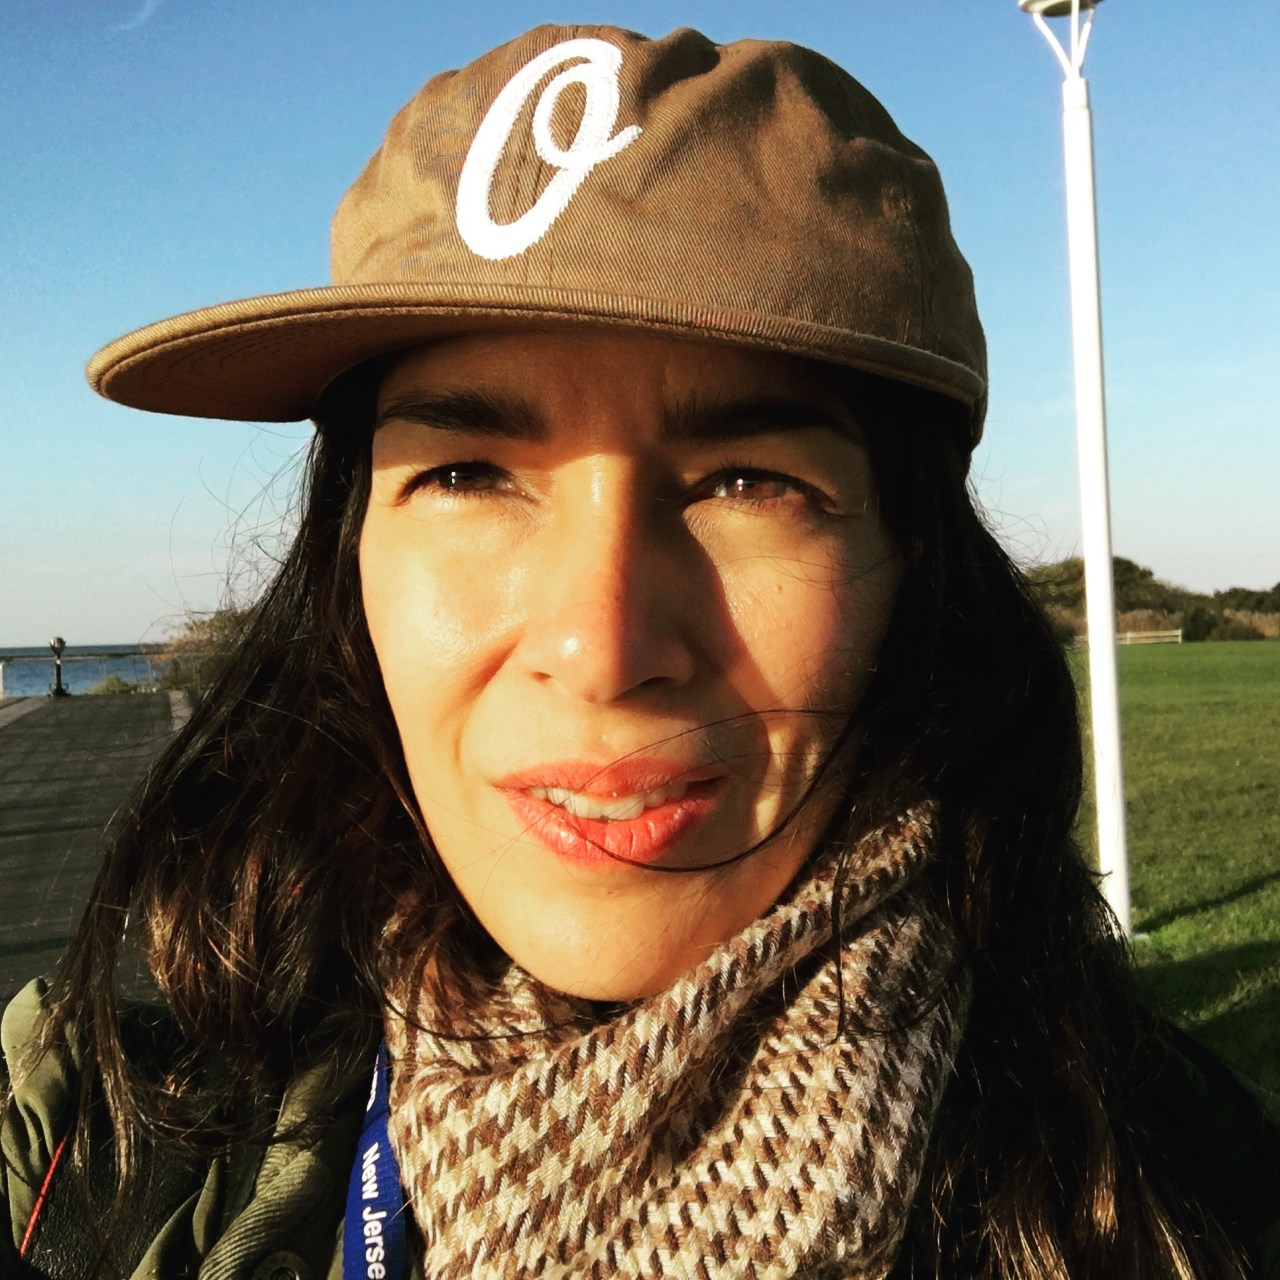 Latinx Woman in brown cap with O, long black hair, in scarf. Harbor background.